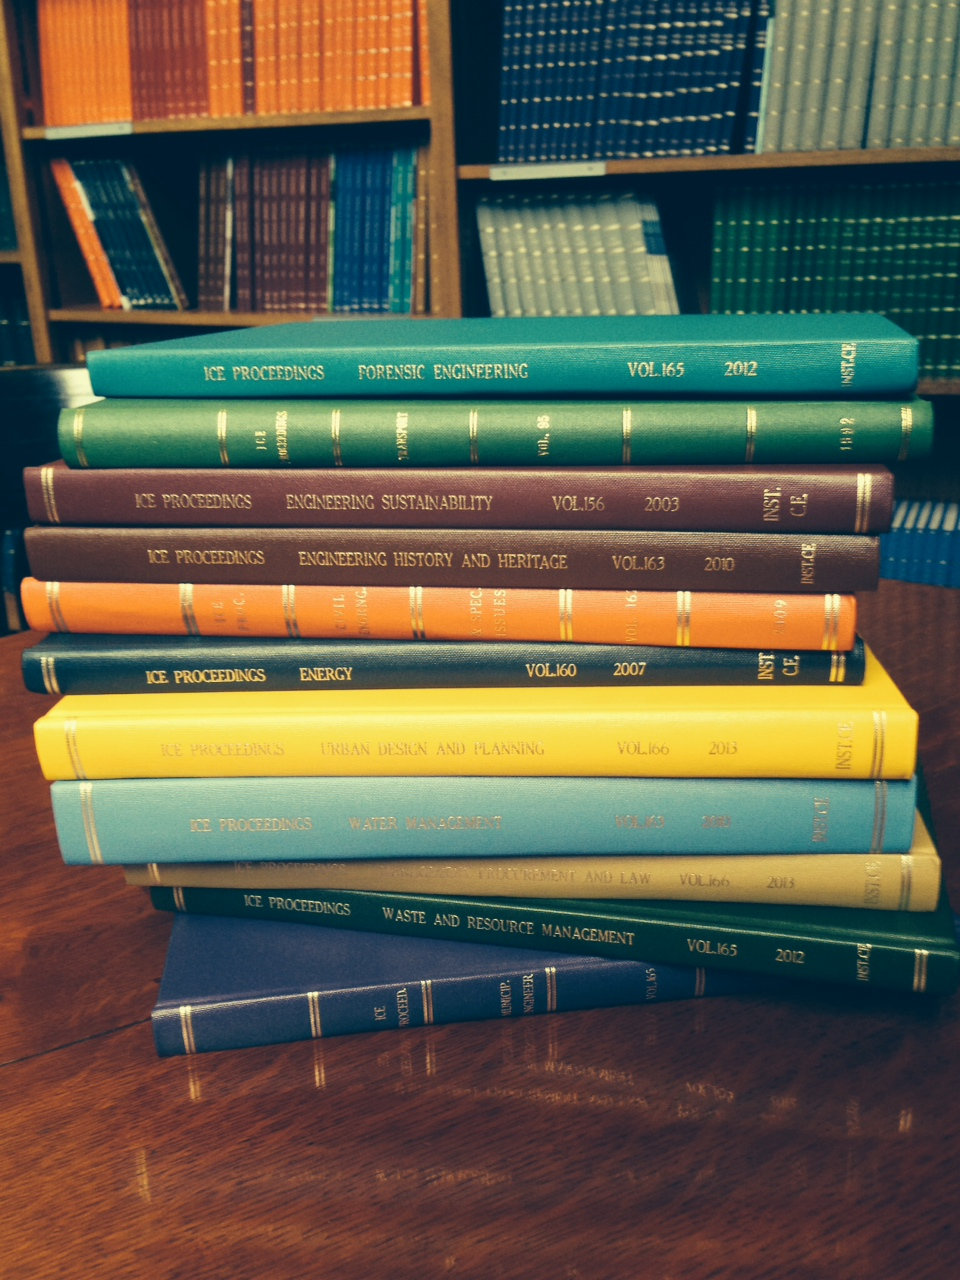 Some print journals found in ICE Library